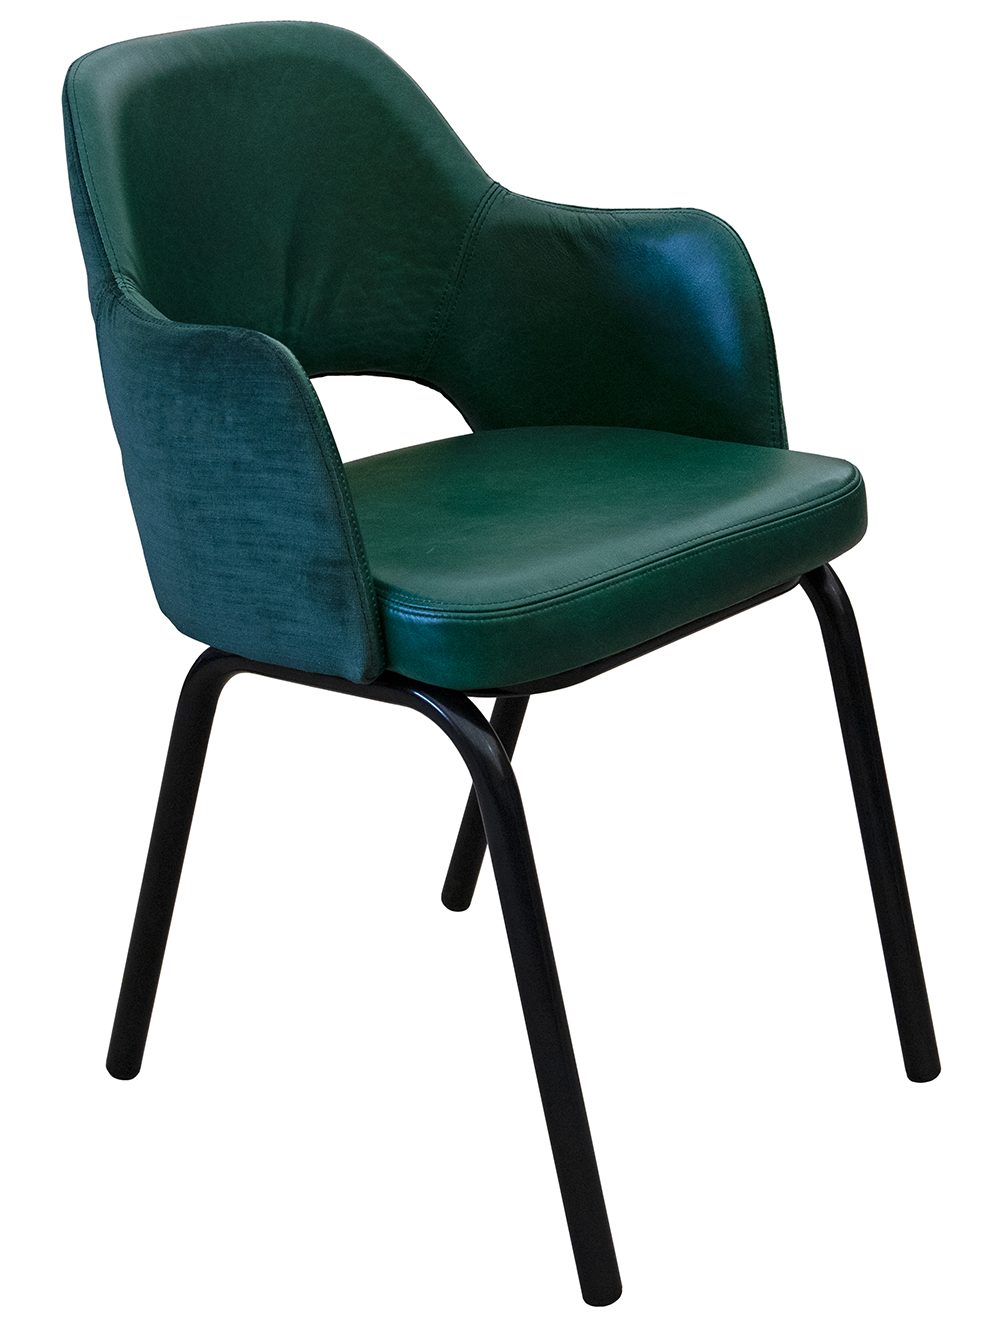 Contract Lincoln Dining Chairs | Carlick Contract Furniture